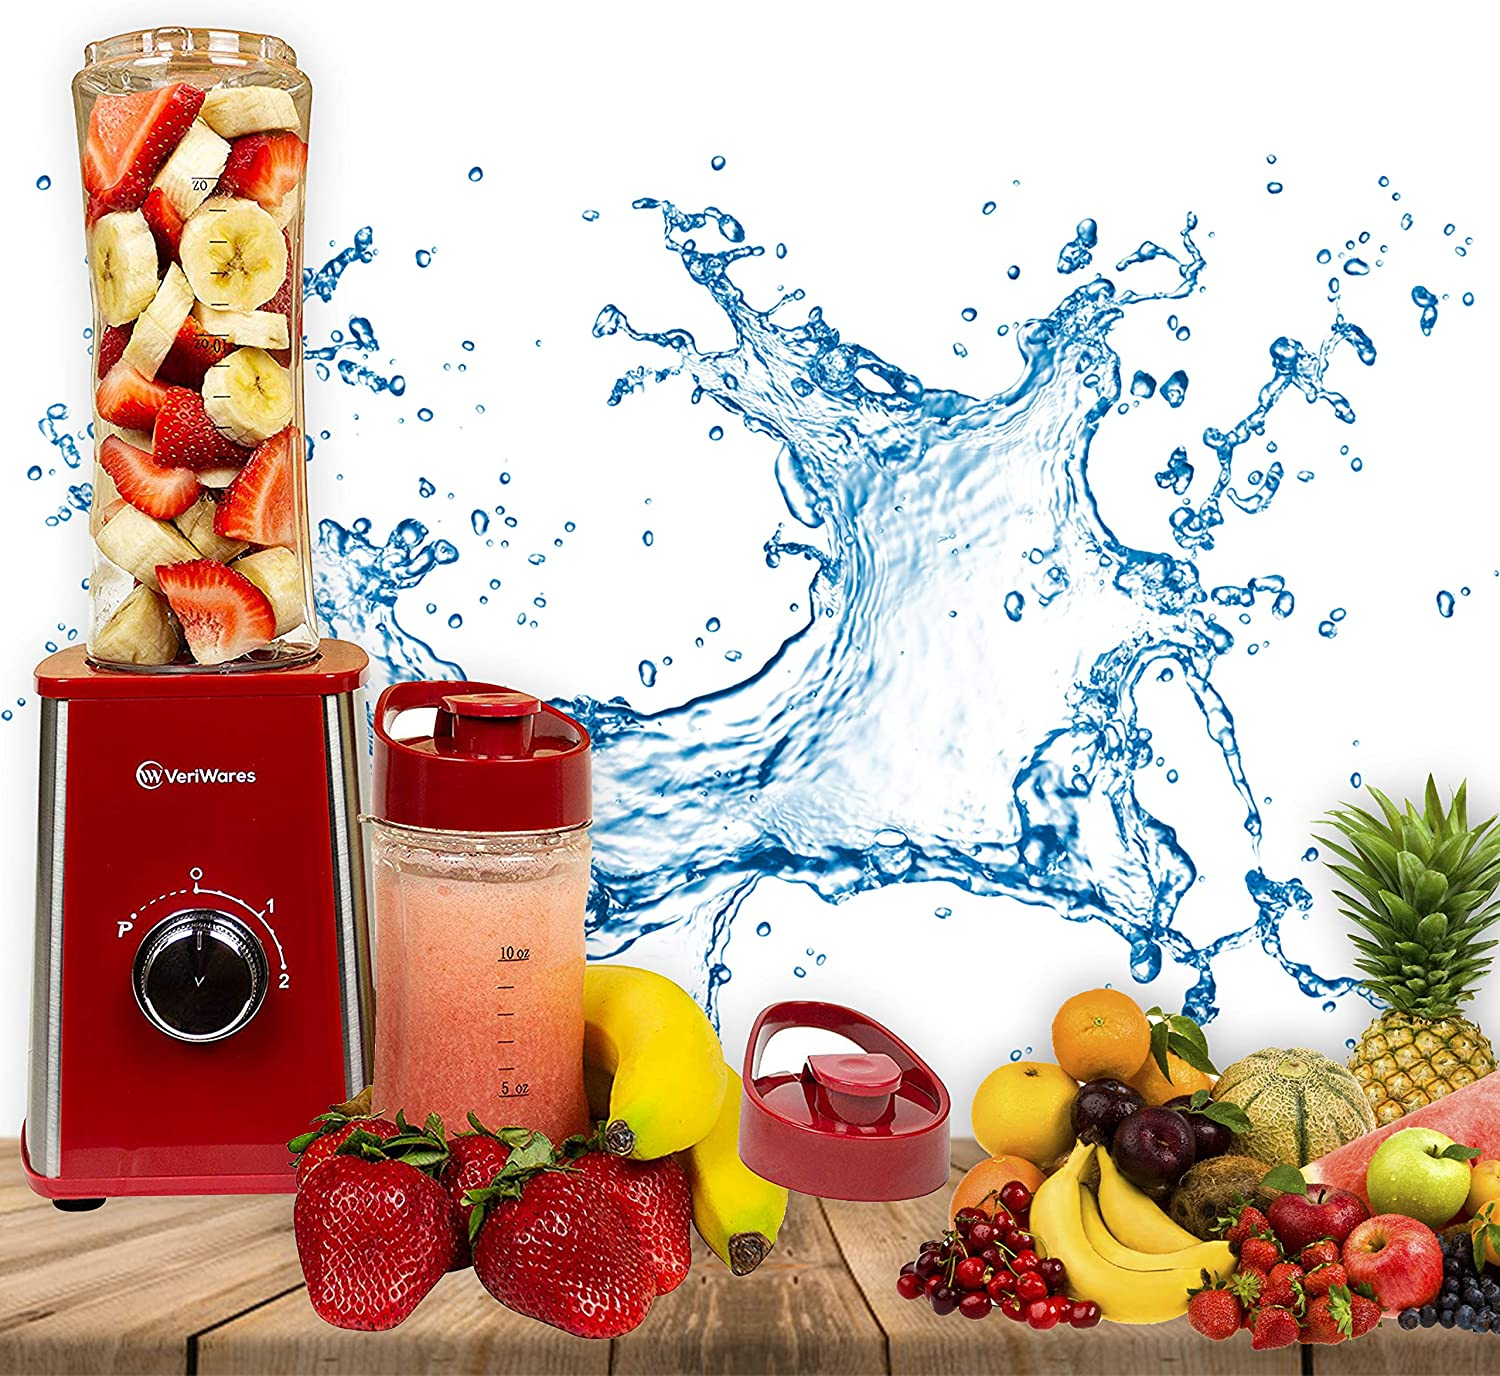 Personal Blender for Shakes and smoothies – Portable 2-Speed Motor and 3 Blades Good for Travel – Practical and Compact Design Smoothie Maker – 2 Leak-Proof BPA-Free Bottles with Oz Marks (Red)